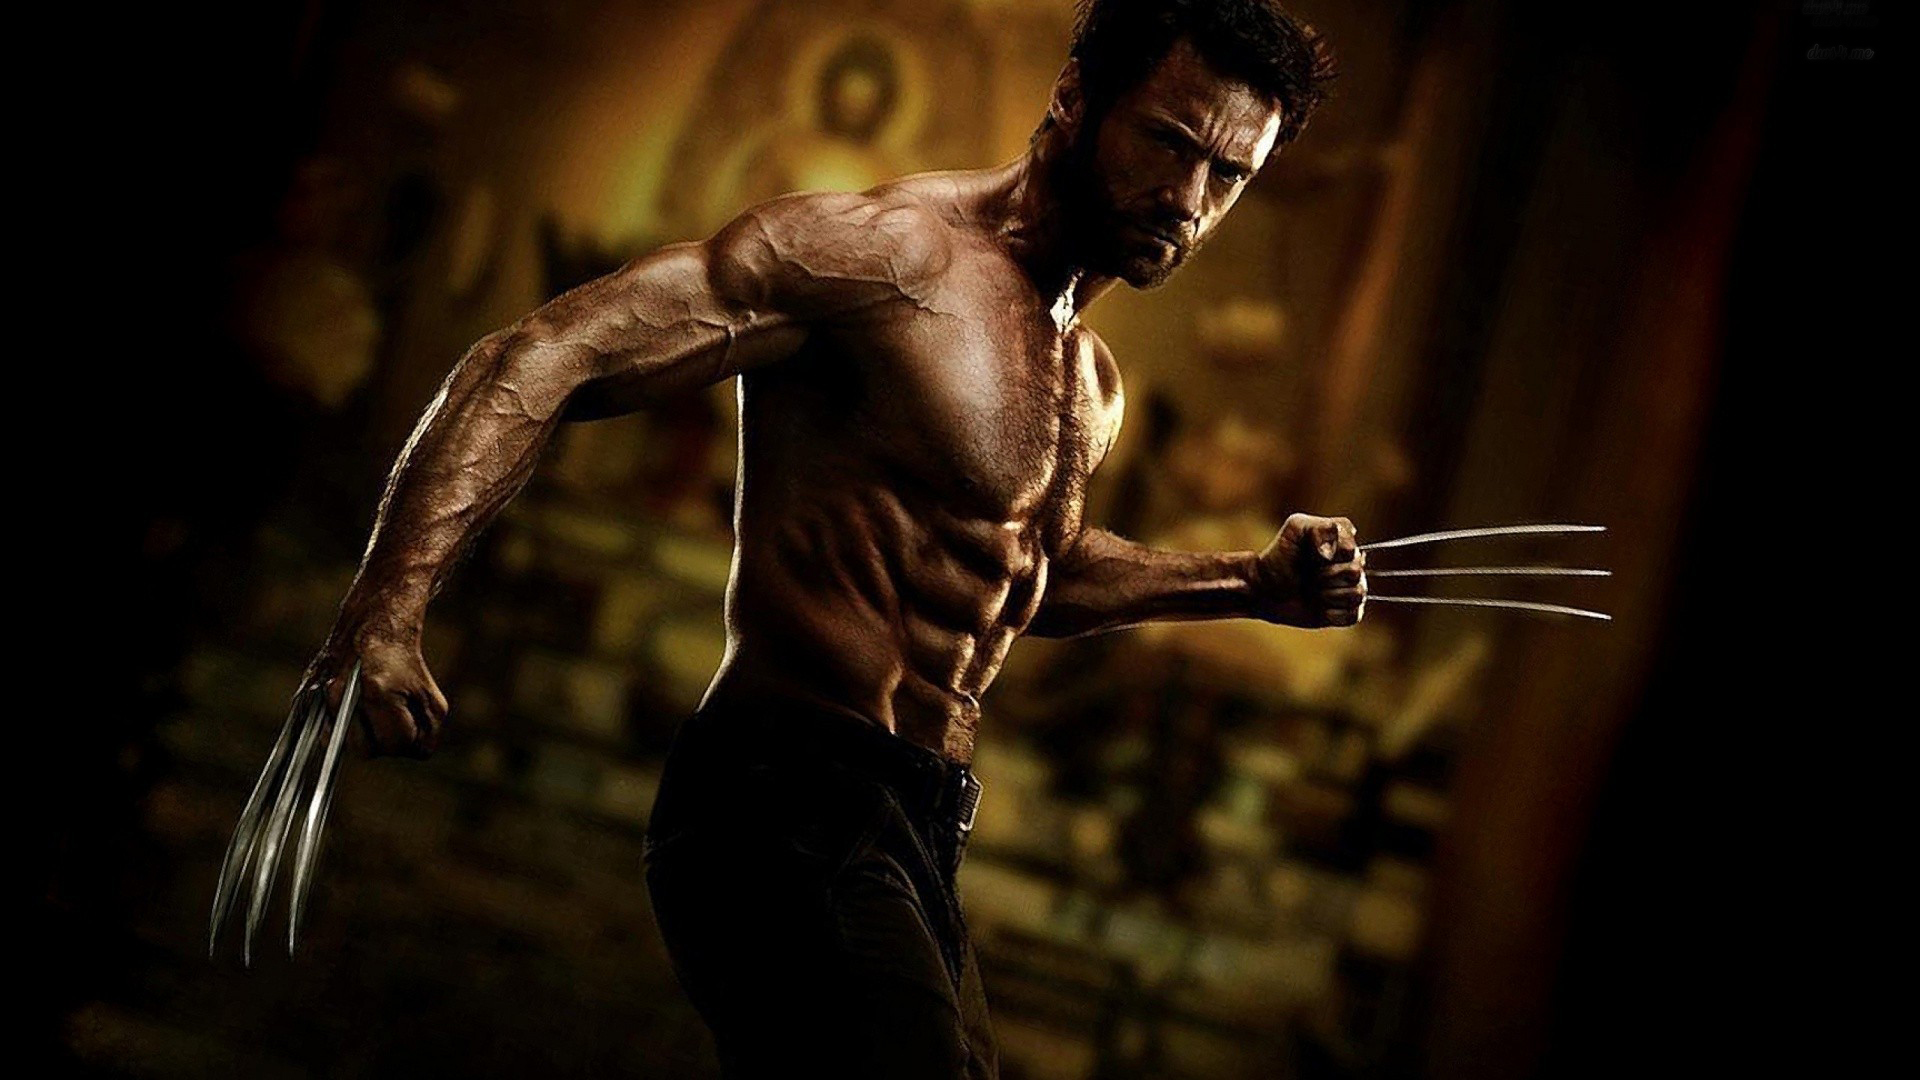 Hd Wallpapers 1080p With Superheroes Wolverine 8 Of 23 Hd